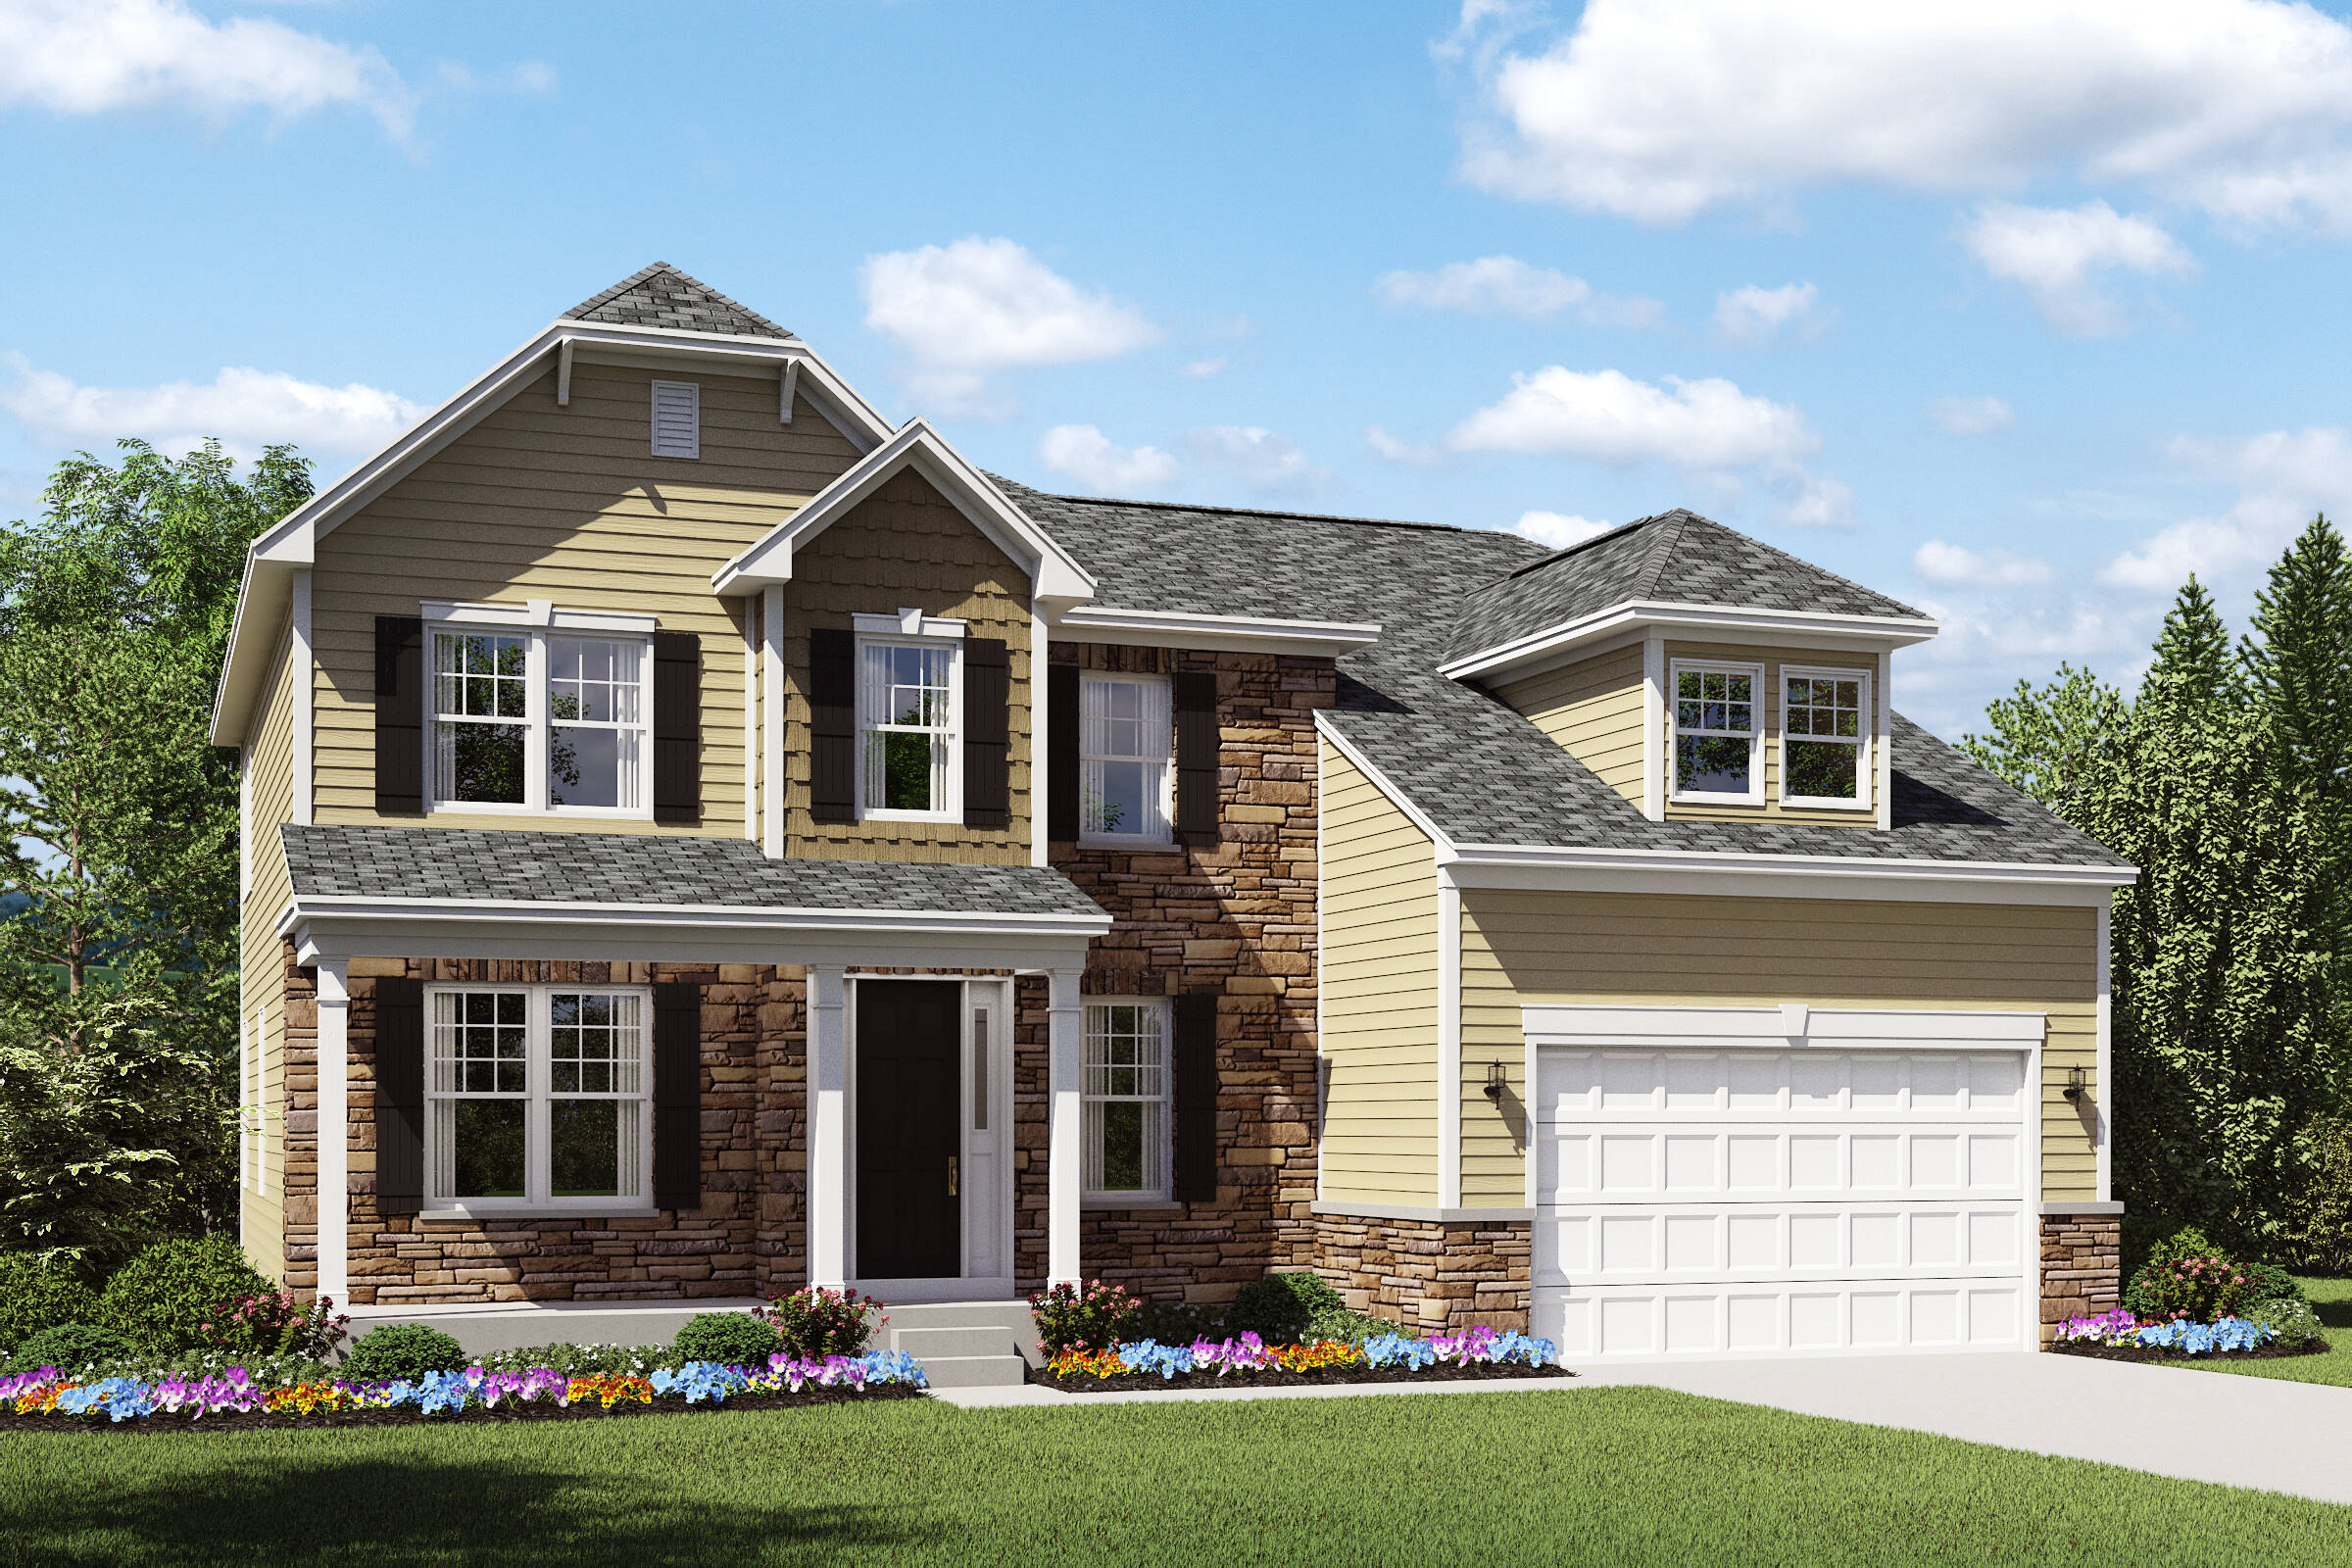 shelton F4T new home designs cleveland